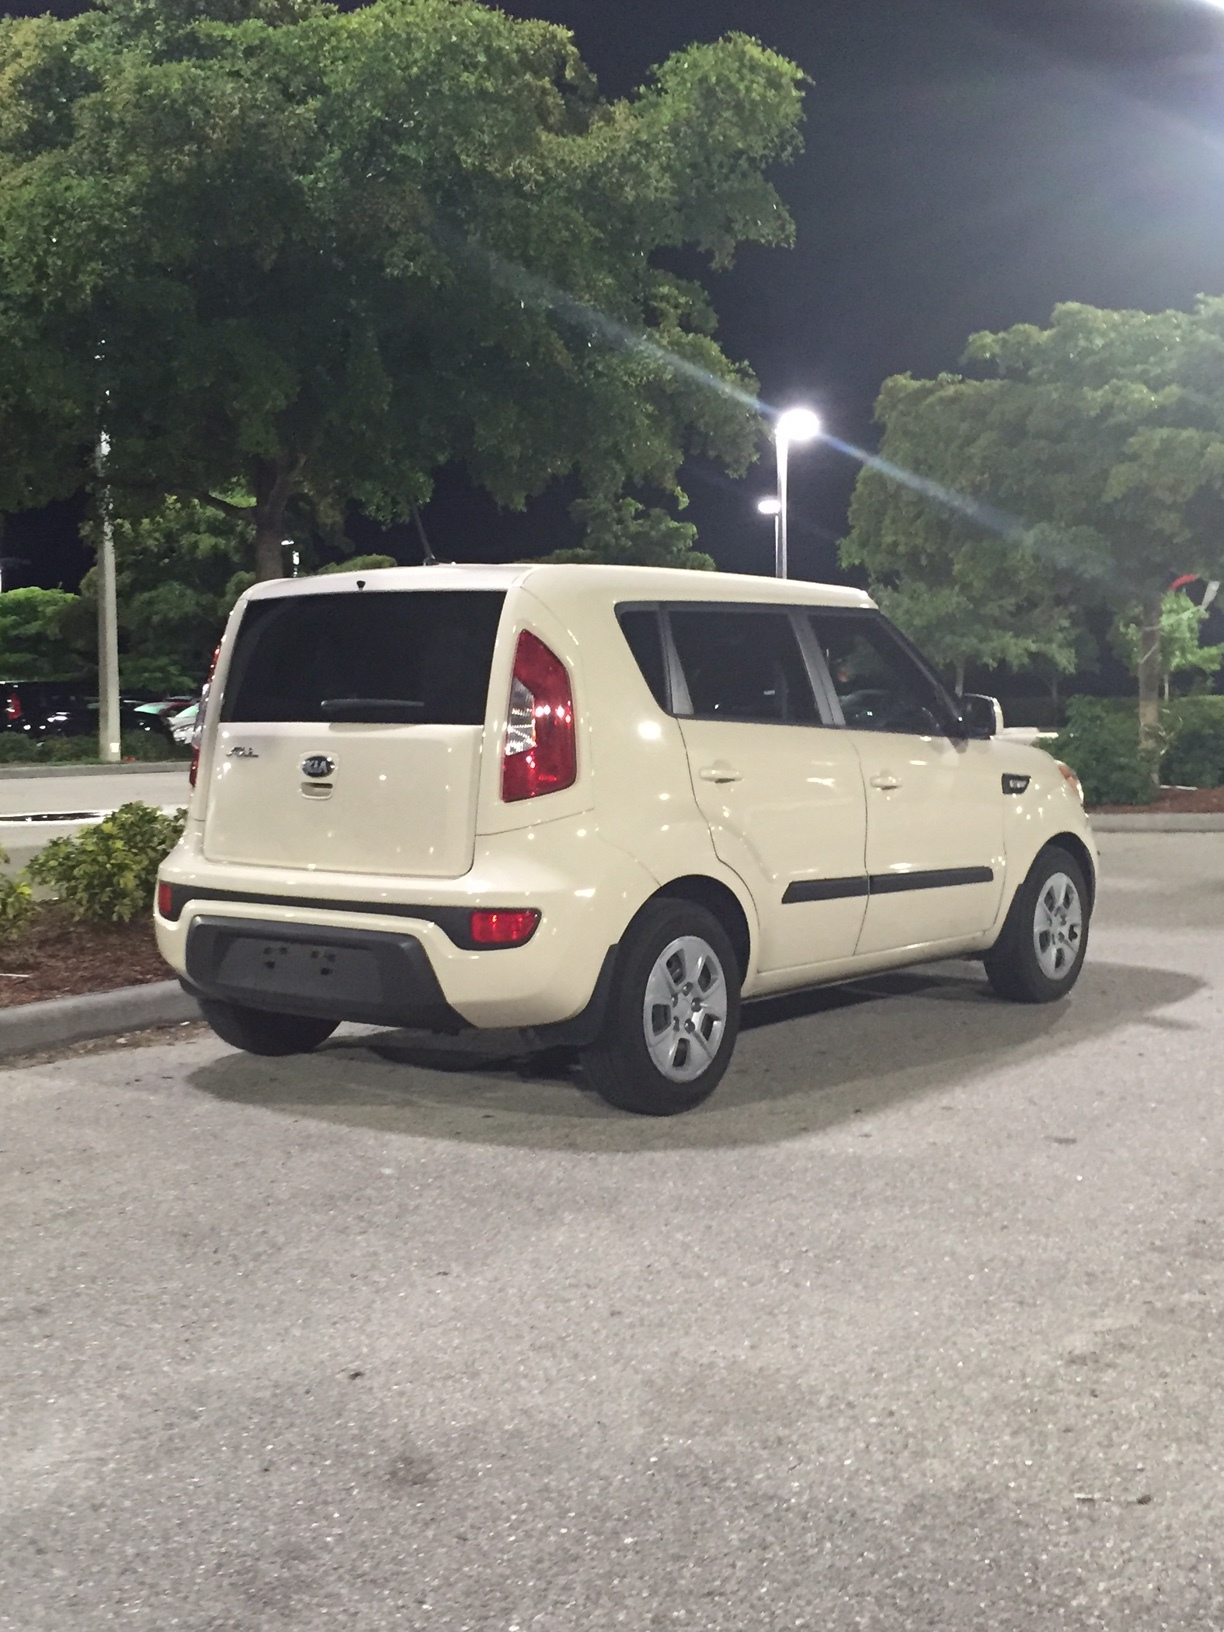 PHOTO:  This is a light cream colored Kia Soul, similar to the suspect vehicle in this hit and run investigation.  Major Crash Investigators believe the actual suspect vehicle will have damage to the front end, near the passenger side.  (Photo Courtesy of Sgt. Justin DeRosso, Cape Coral Police Department)